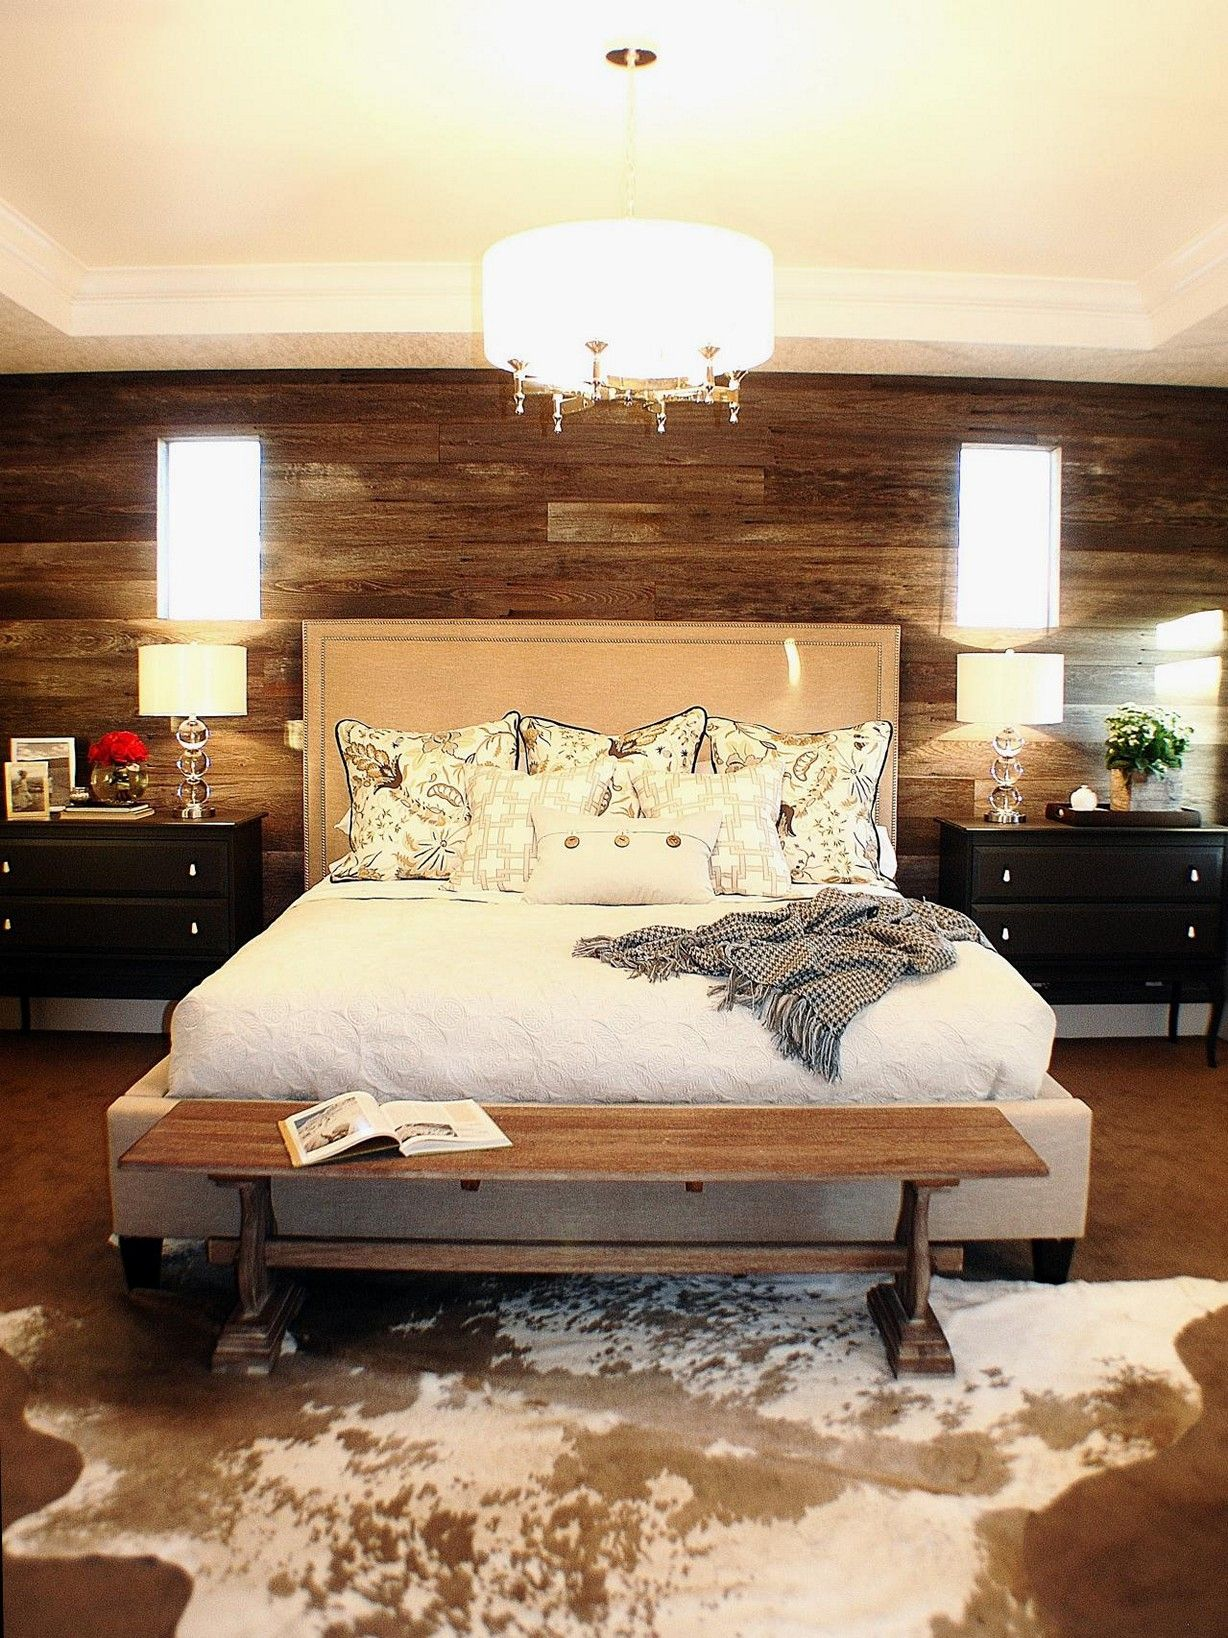 Accent Wall Ideas For Master Bedroom 30 Inspiring Accent Wall Ideas To Change An Area Small Tiny Home